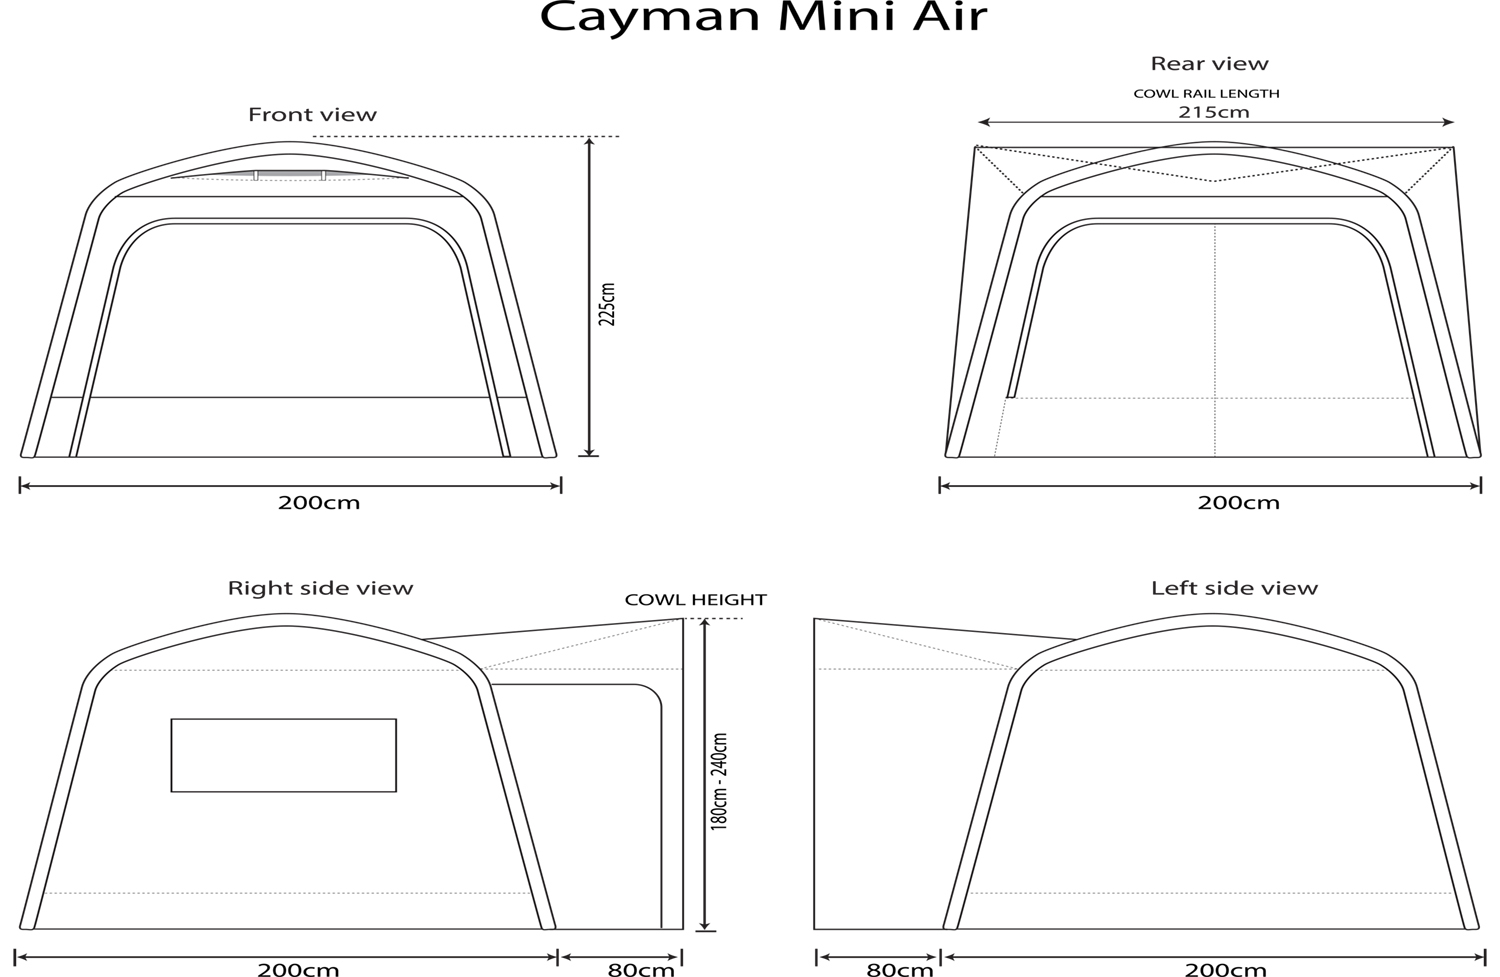 Movelite Cayman Mini Air Compact Blow Up Utility Rv Awning